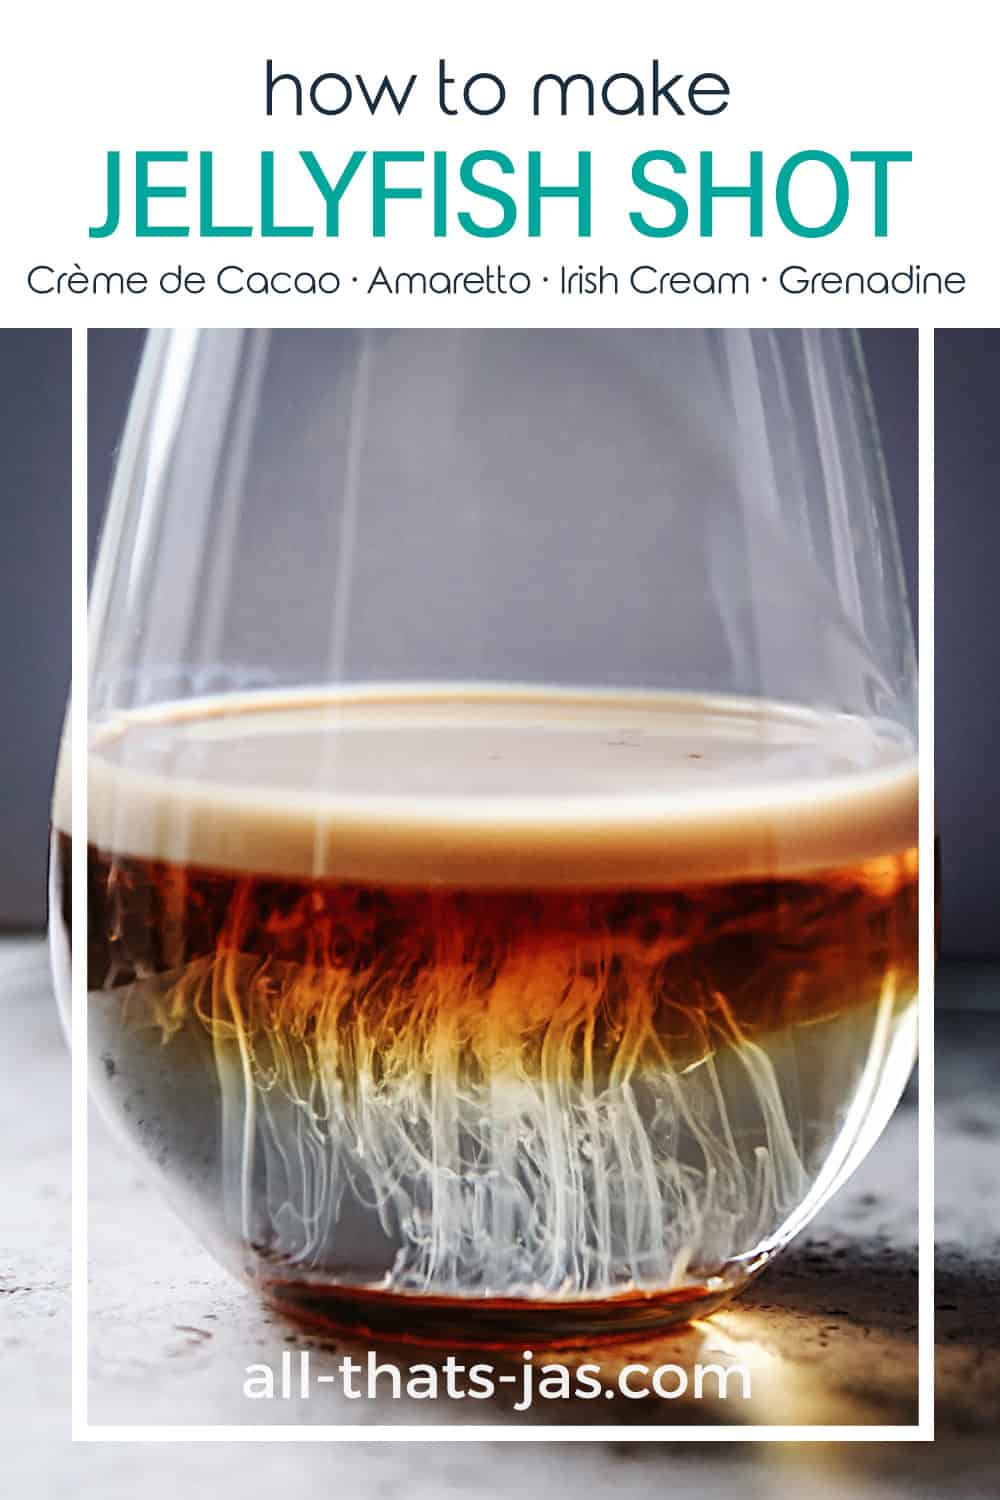 A drink in a glass with text overlay